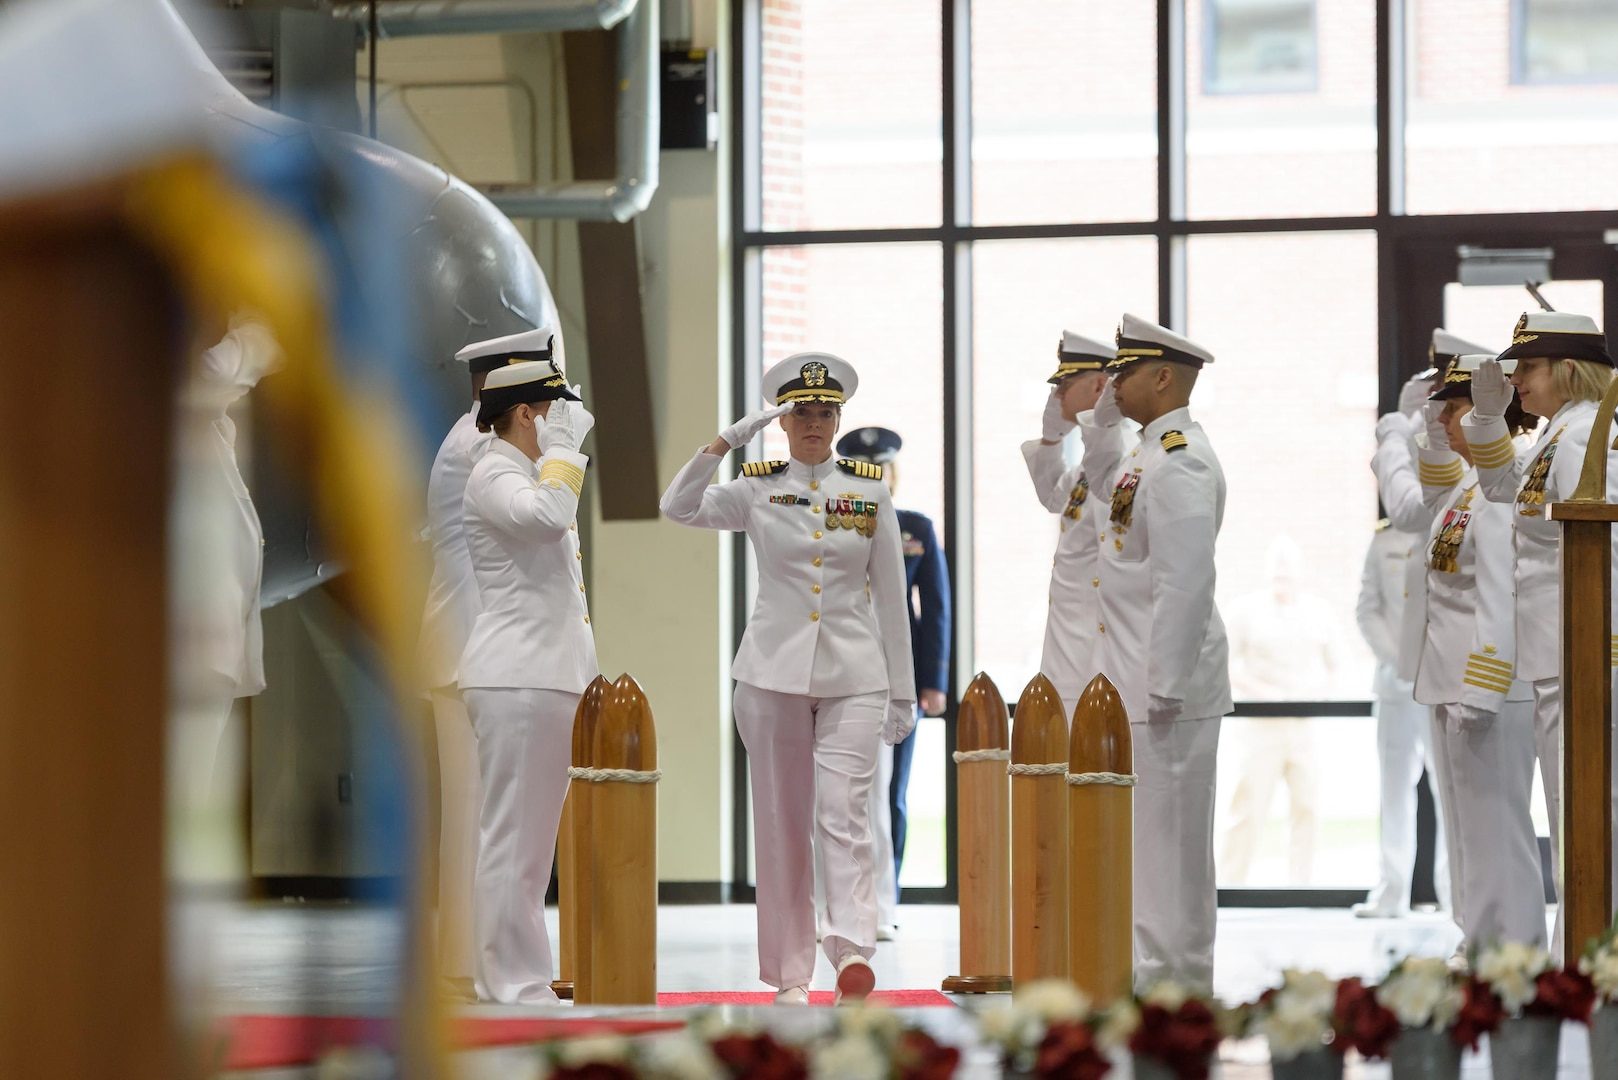 Navy Capt. Sonya Ebright passes through the sideboys at the start of Defense Contract Management Agency International's change of command ceremony at Fort Lee, Virginia, May 23. Ebright assumed command from Navy Rear Adm. Deborah Haven who had presided over the agency's international contract administration operations in 26 different countries overseeing 9,600 contracts totaling over $75 billion in program value.